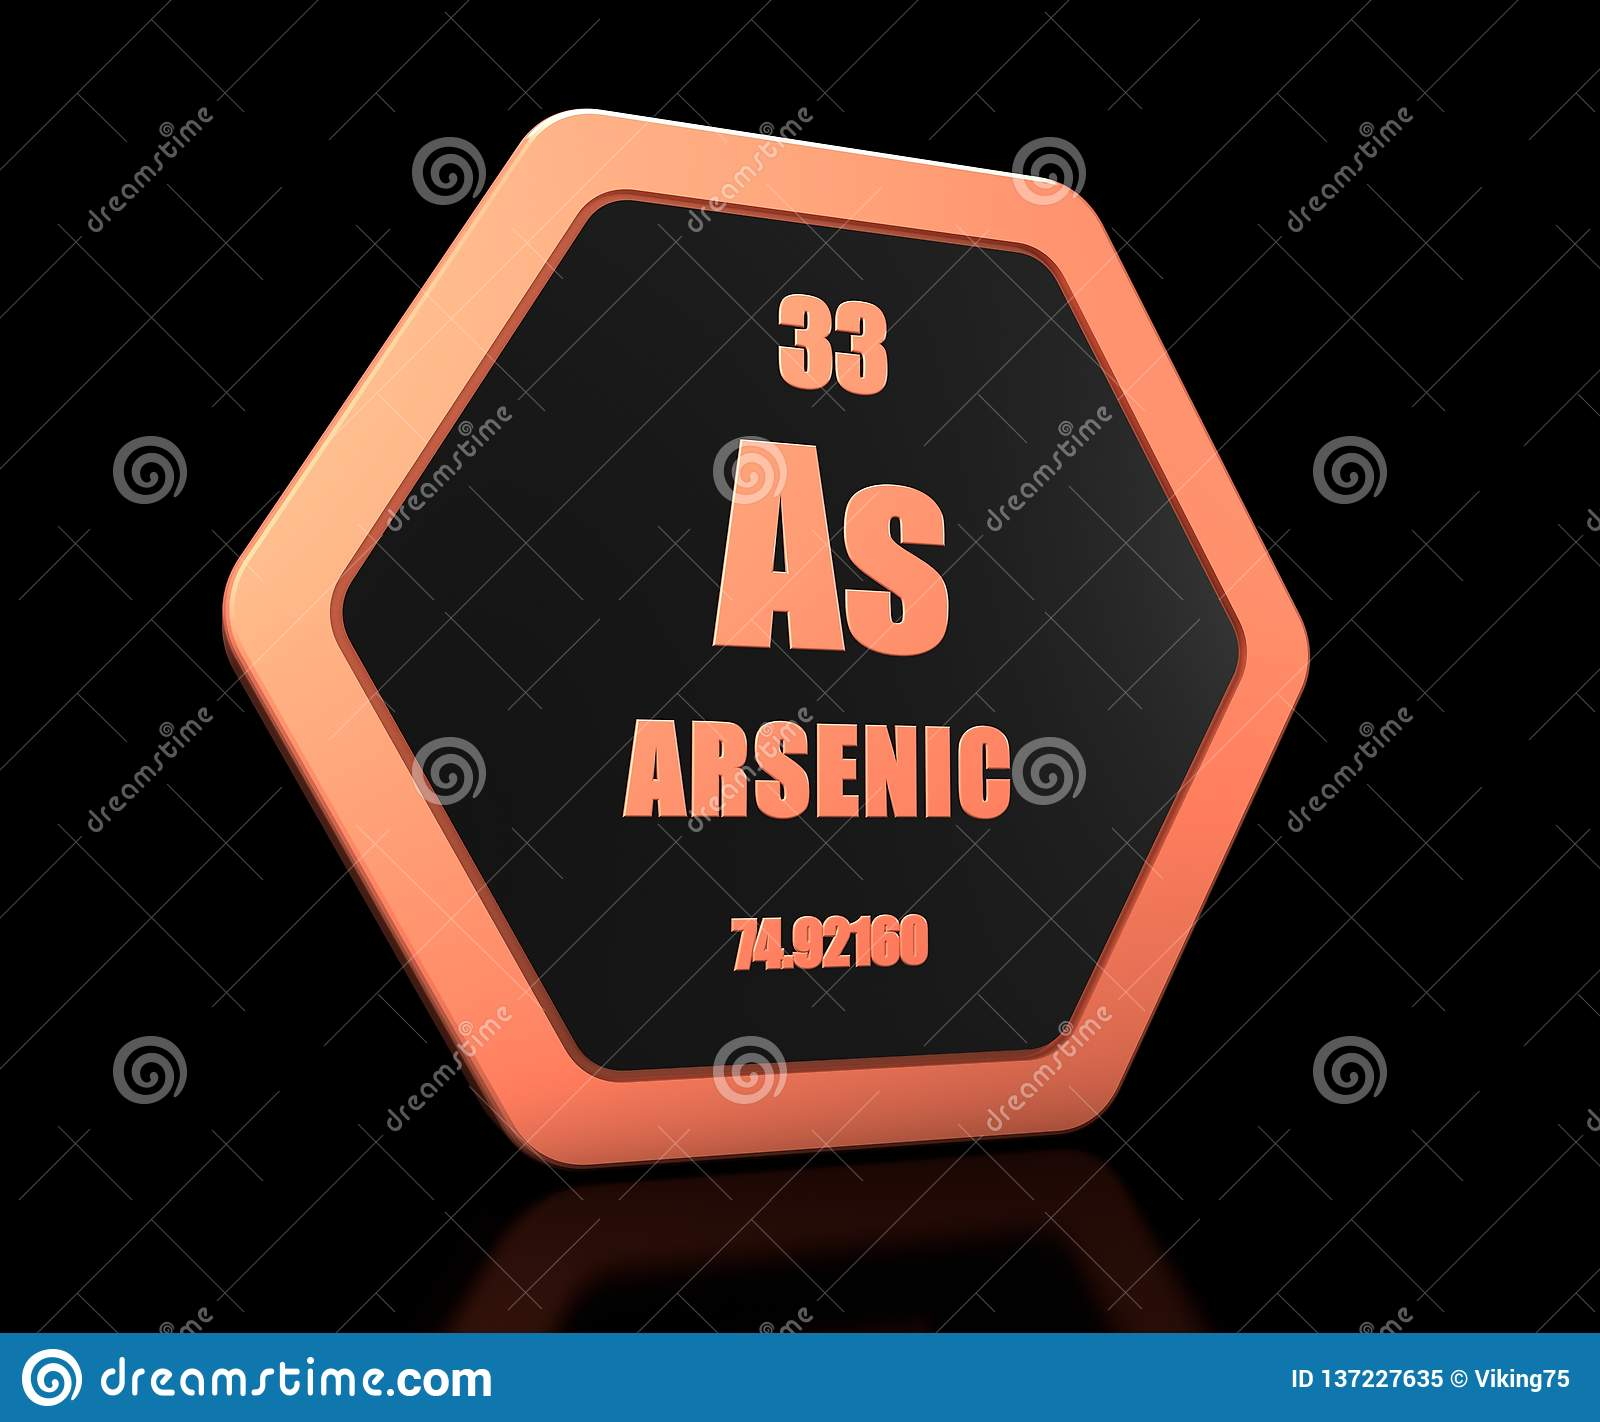 Arsenic chemical element periodic table symbol 3d render